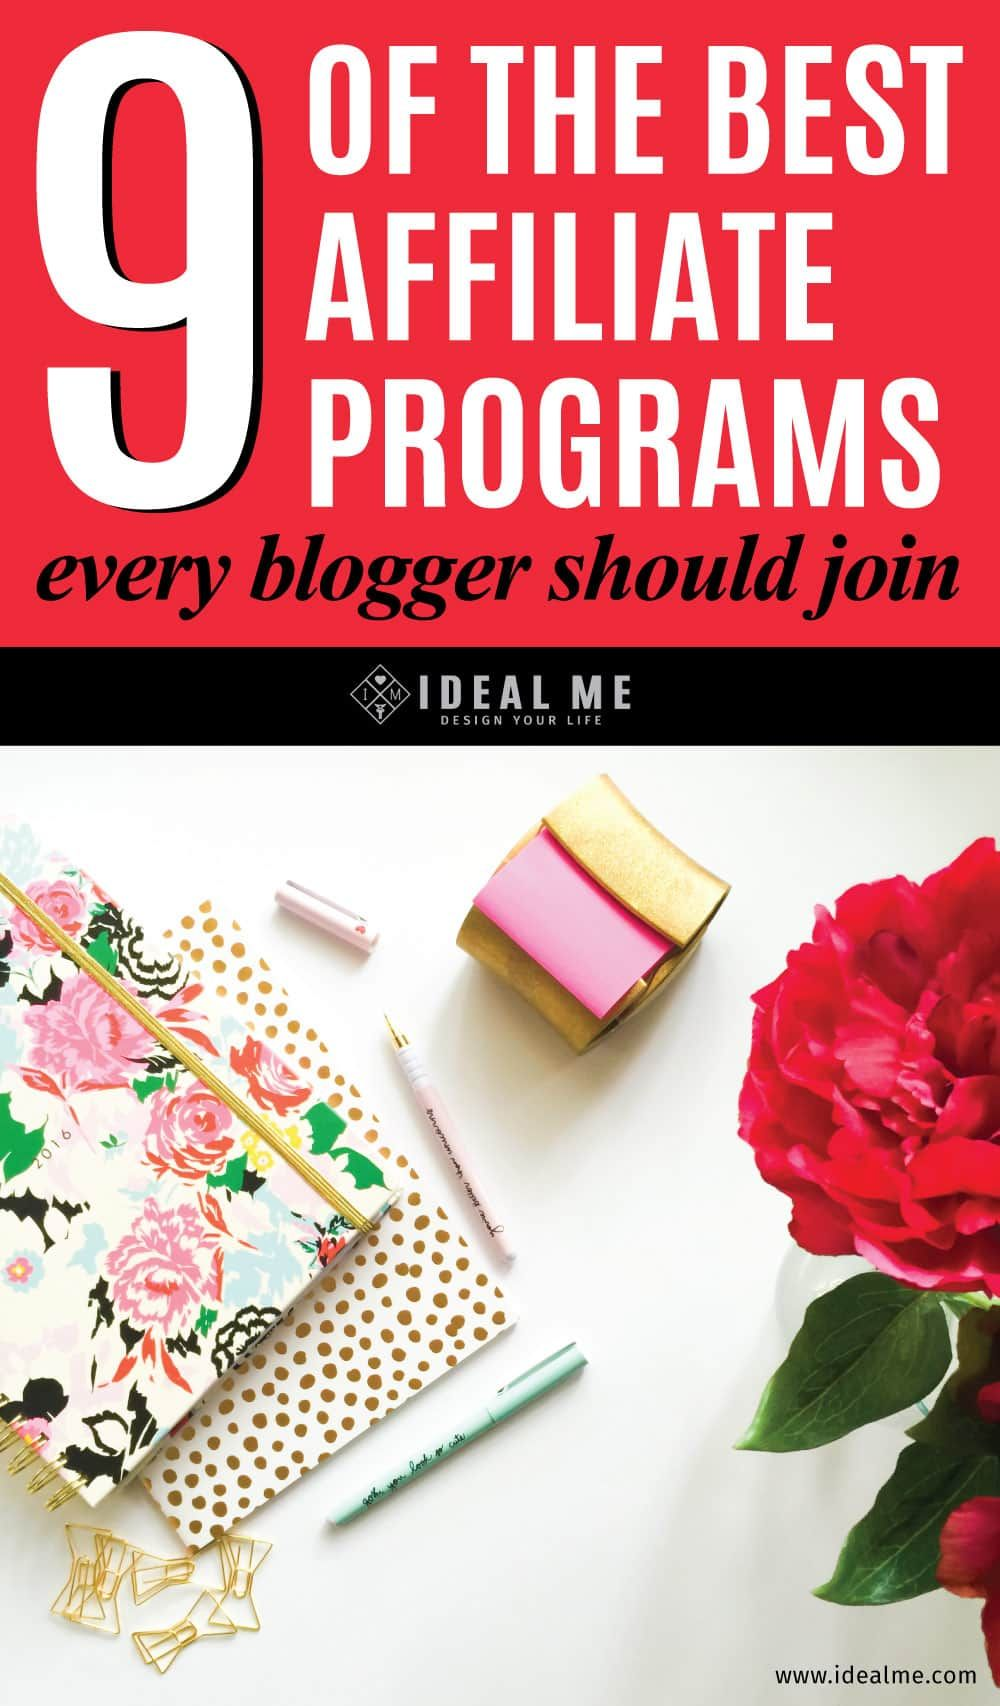 9 Of The Best Affiliate Programs Every Blogger Should Join